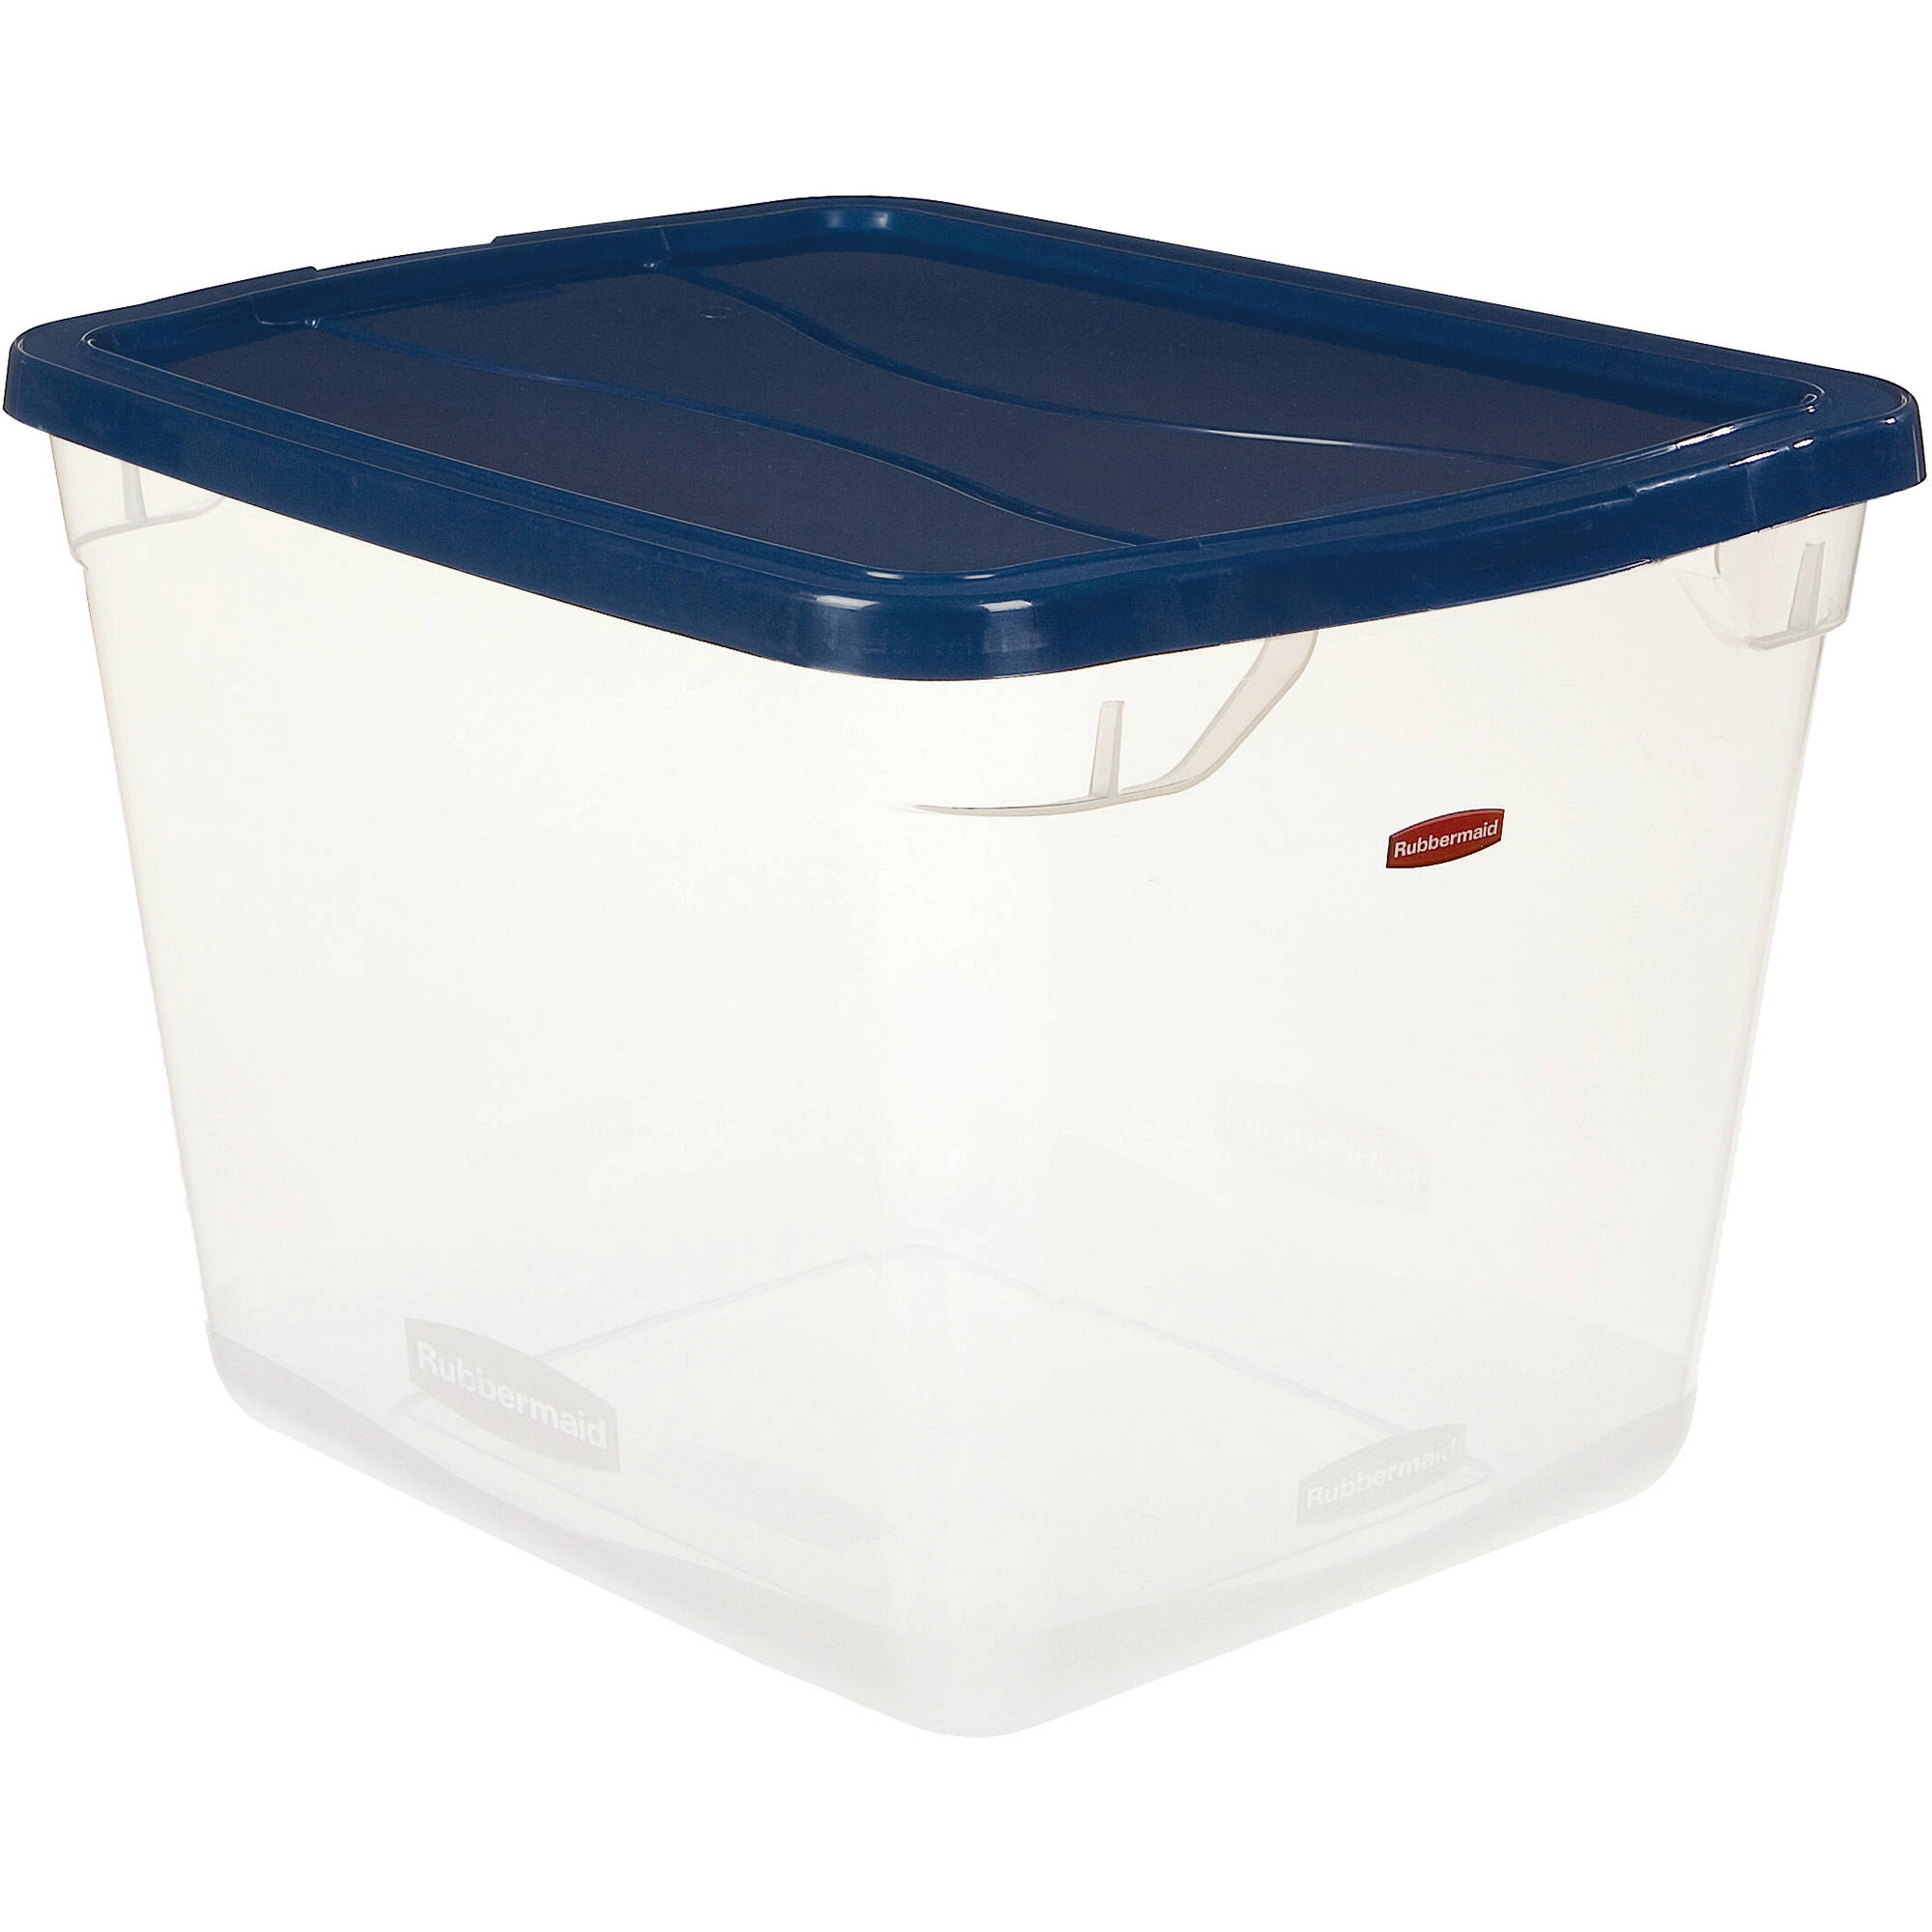 Rubbermaid 7.5-Gallon / 30-Quart Plastic Storage Totes Clear/ Blue (Set of 8) - Walmart.com  sc 1 st  Walmart & Rubbermaid 7.5-Gallon / 30-Quart Plastic Storage Totes Clear/ Blue ...